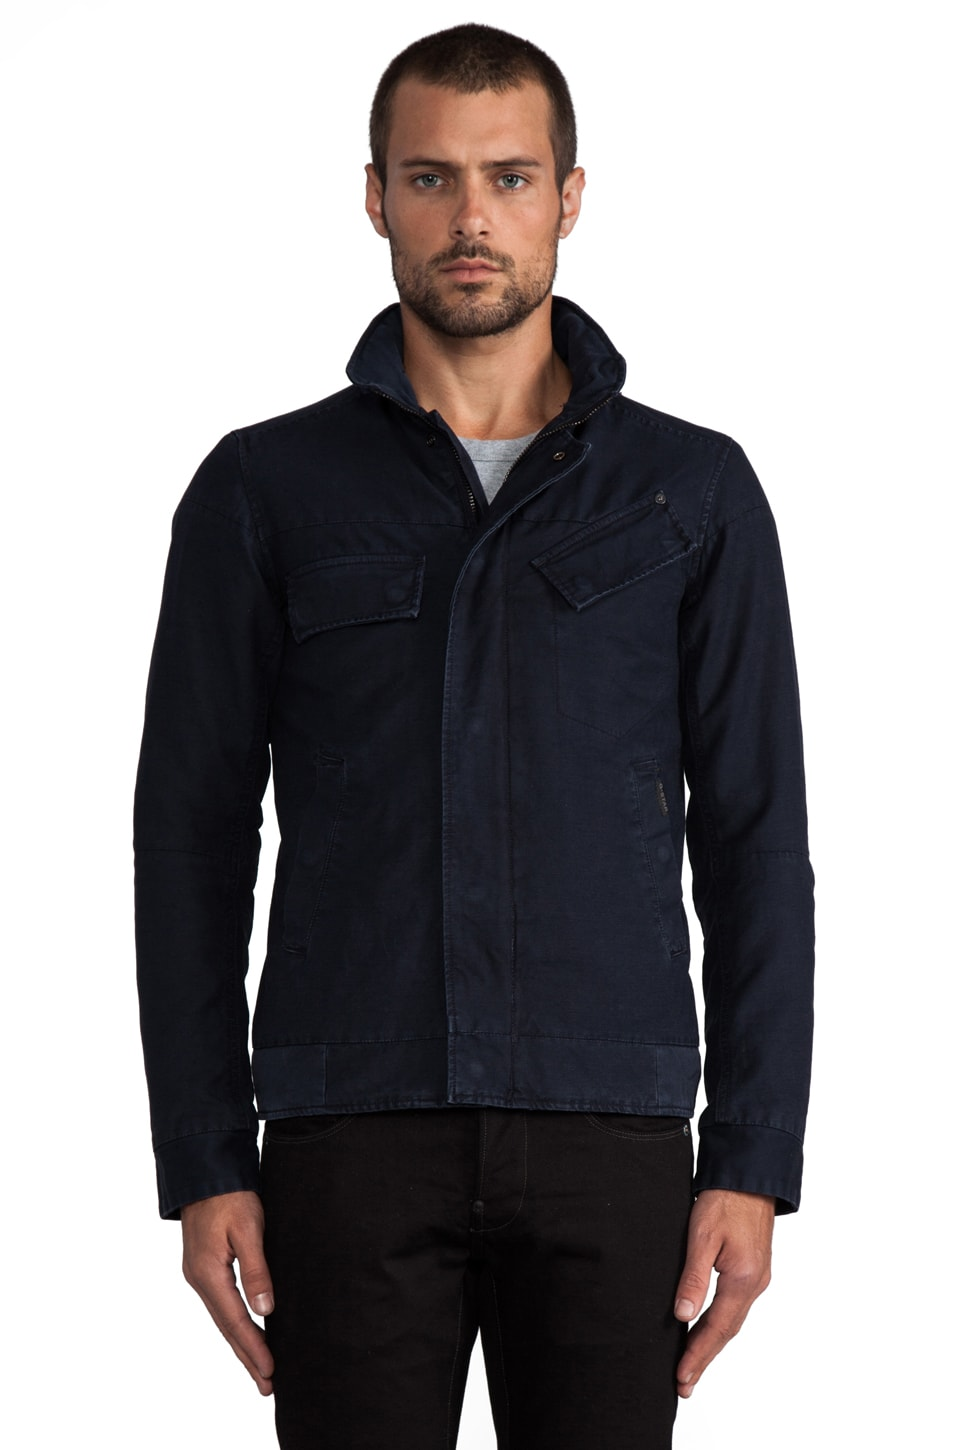 G-Star Raw Radar Jacket en Bleu Mazarin